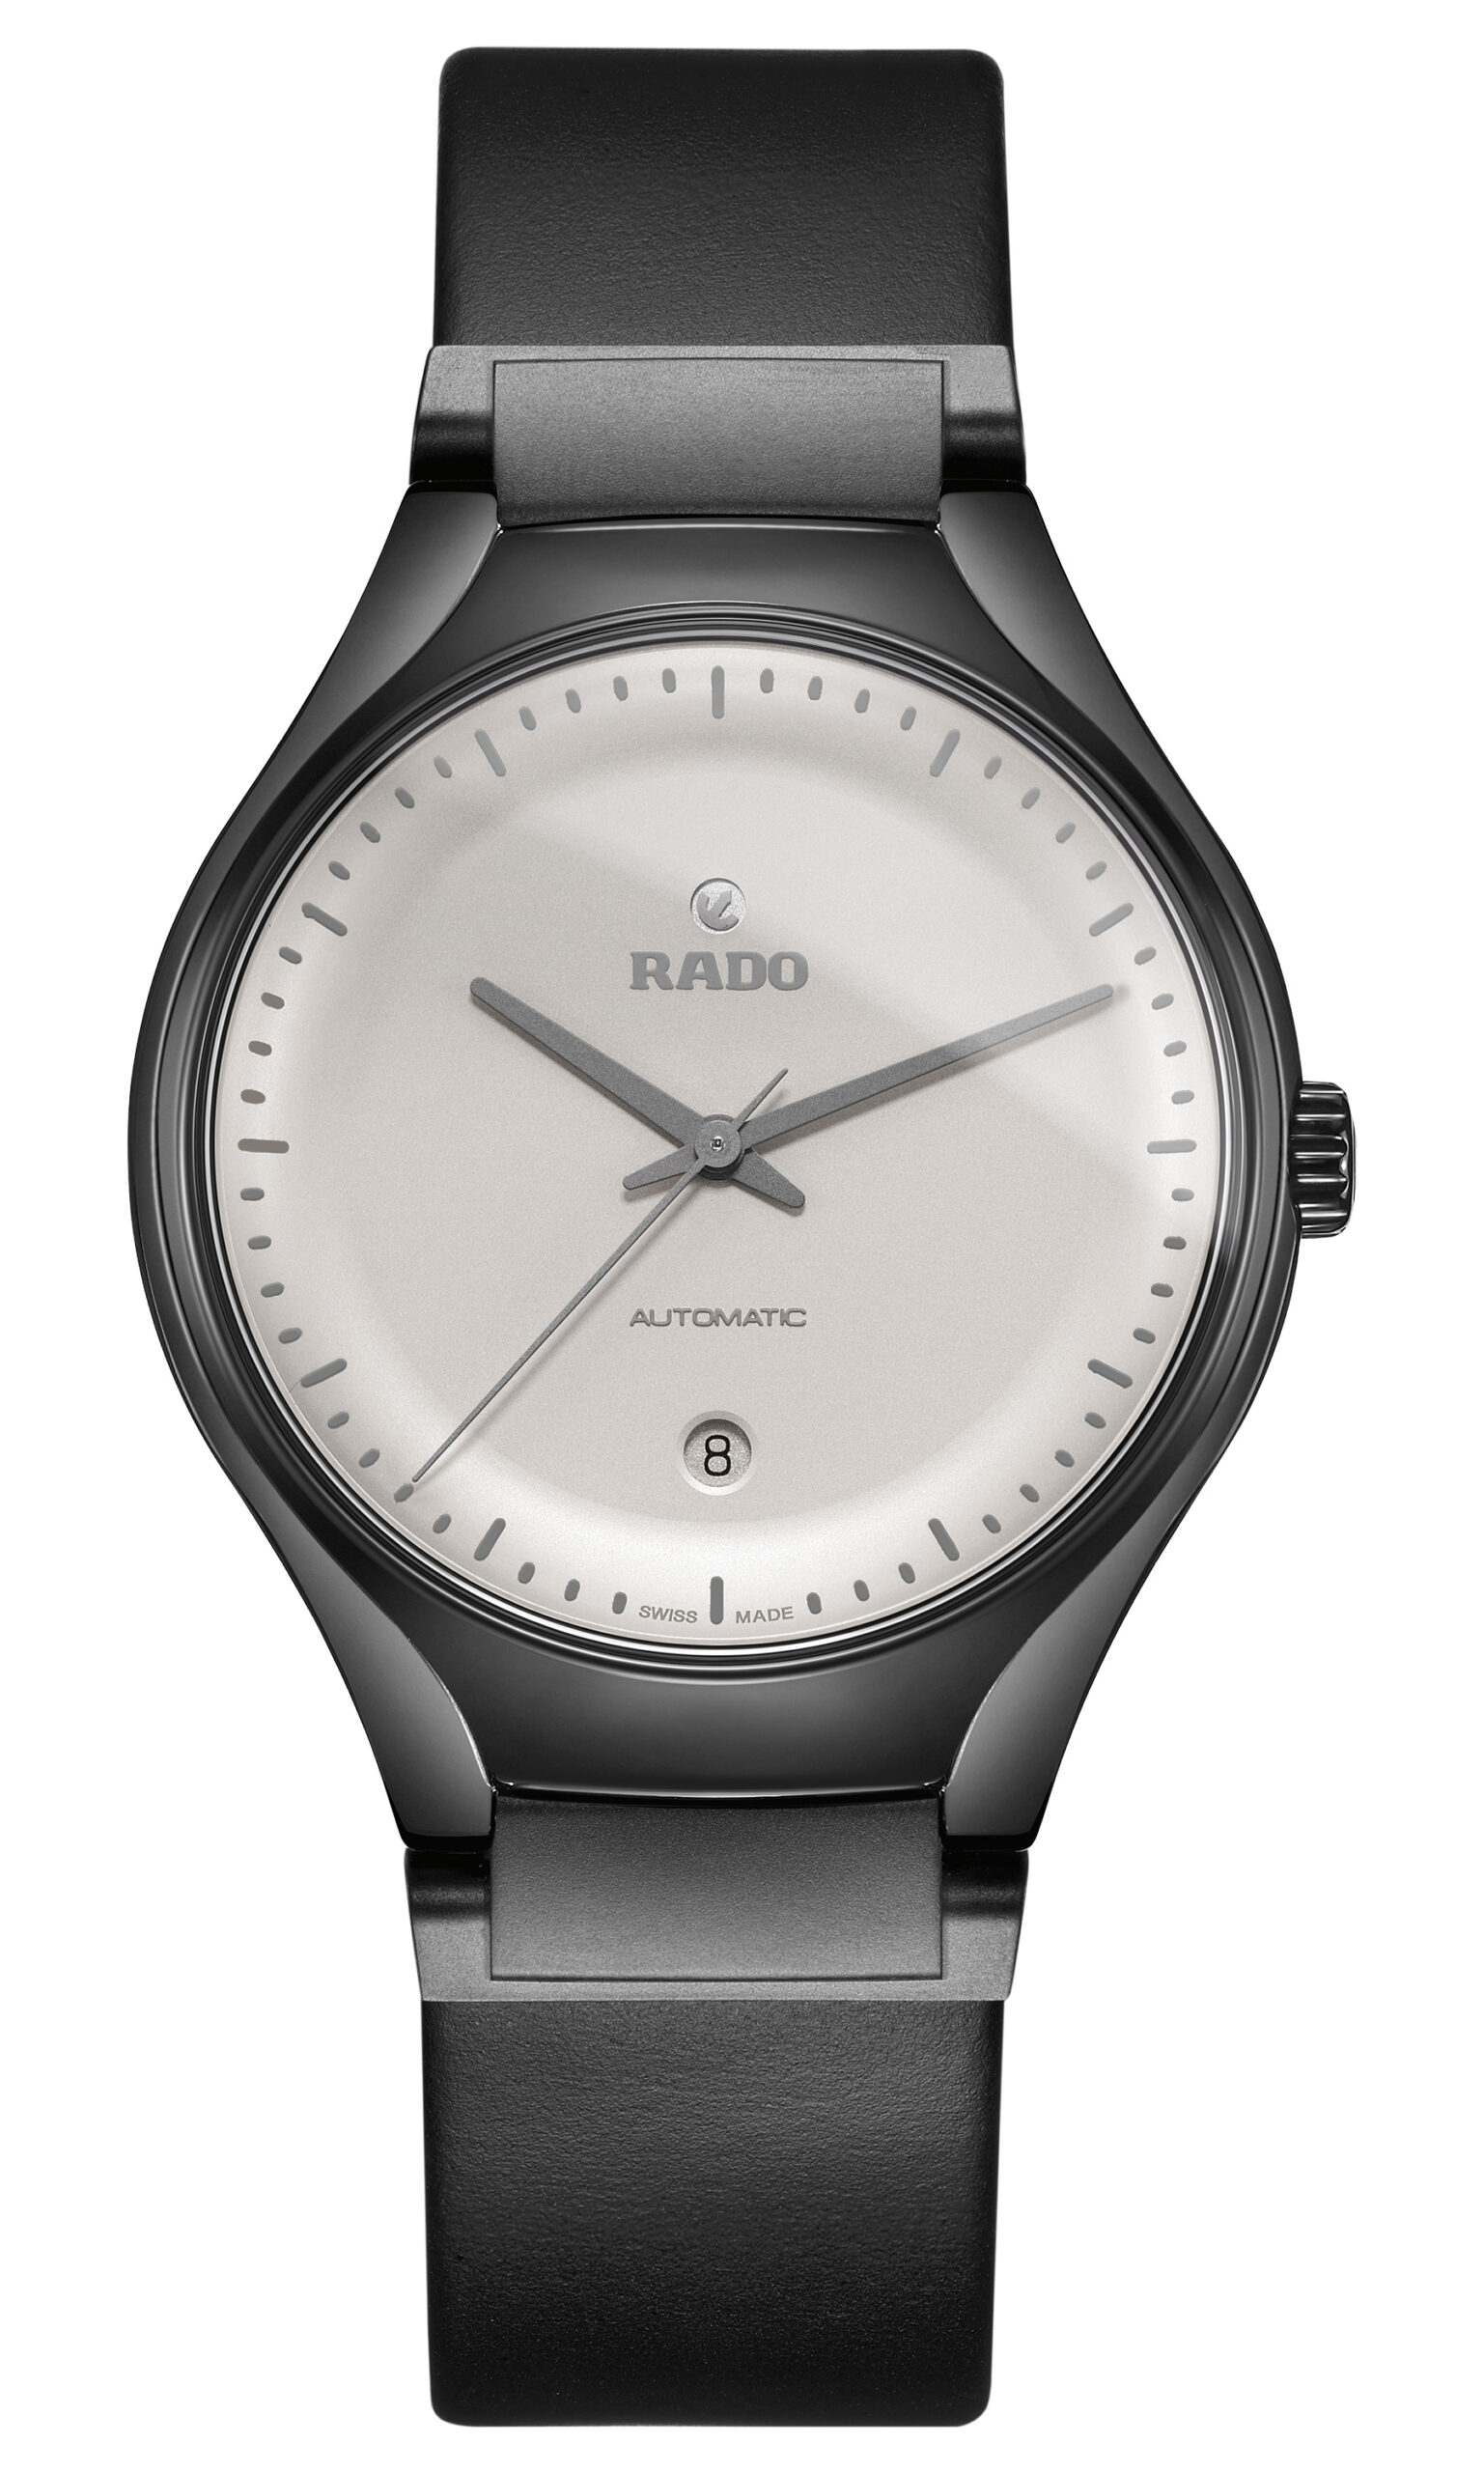 Rado True Cyclo designed by Philippe Nigro